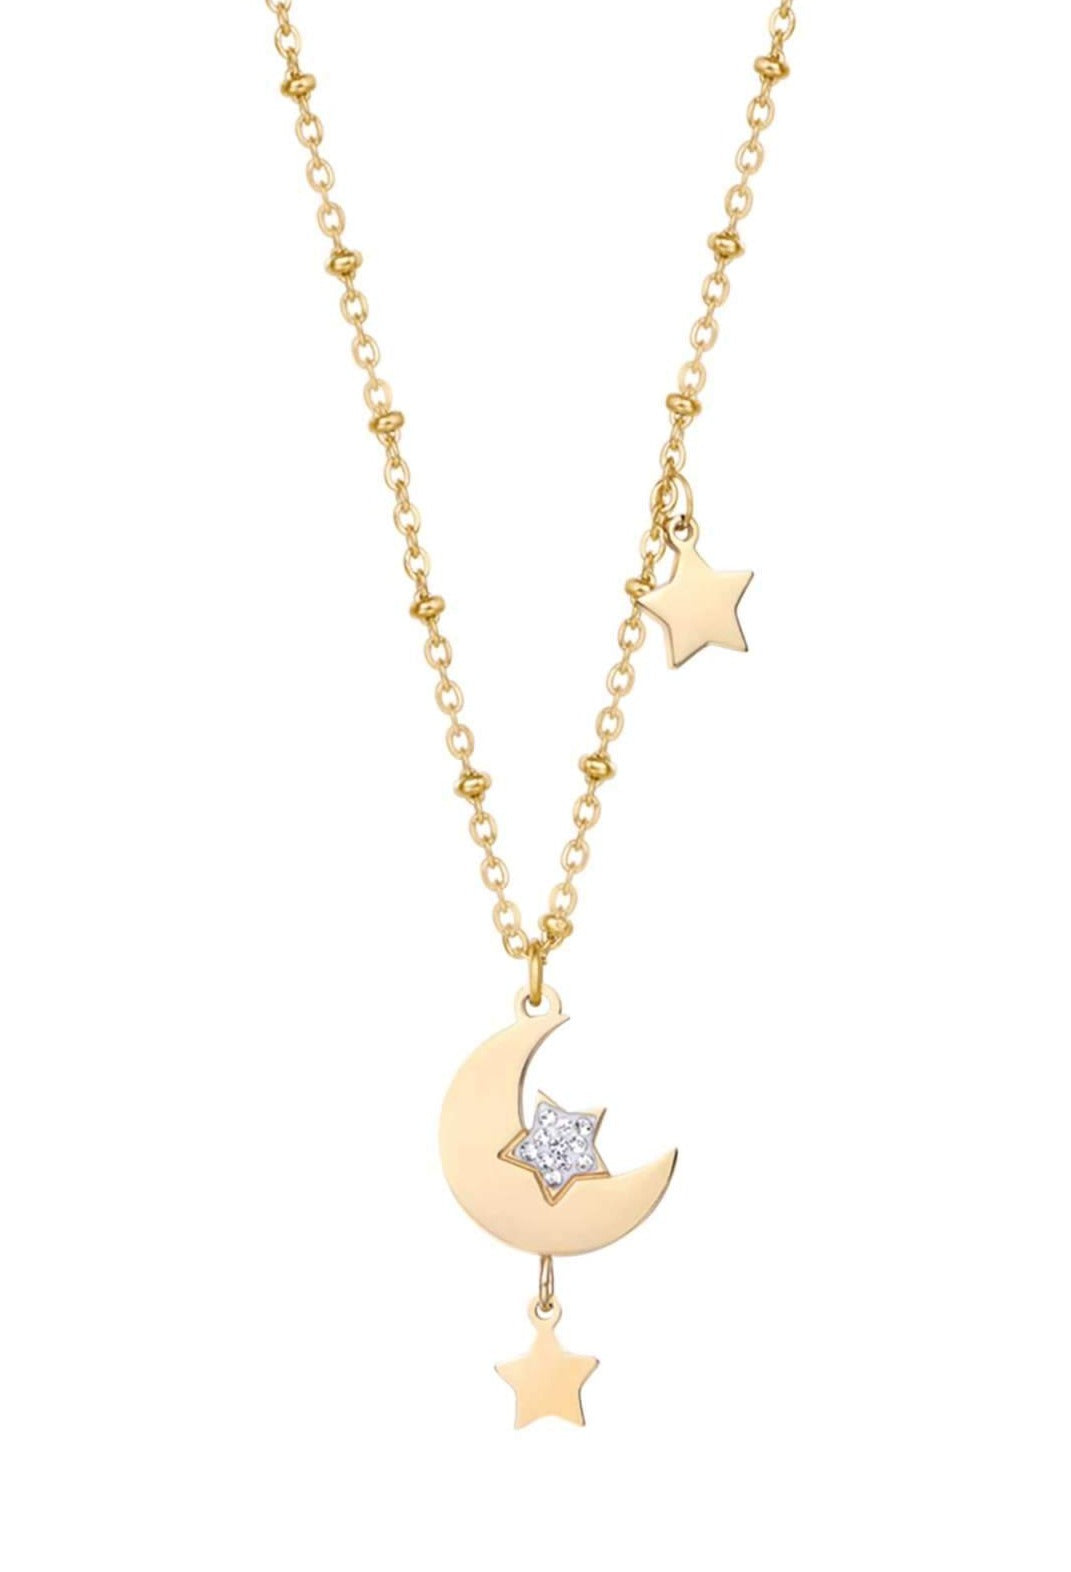 Luca Barra CK1486 Gold Plated Necklace with Moon